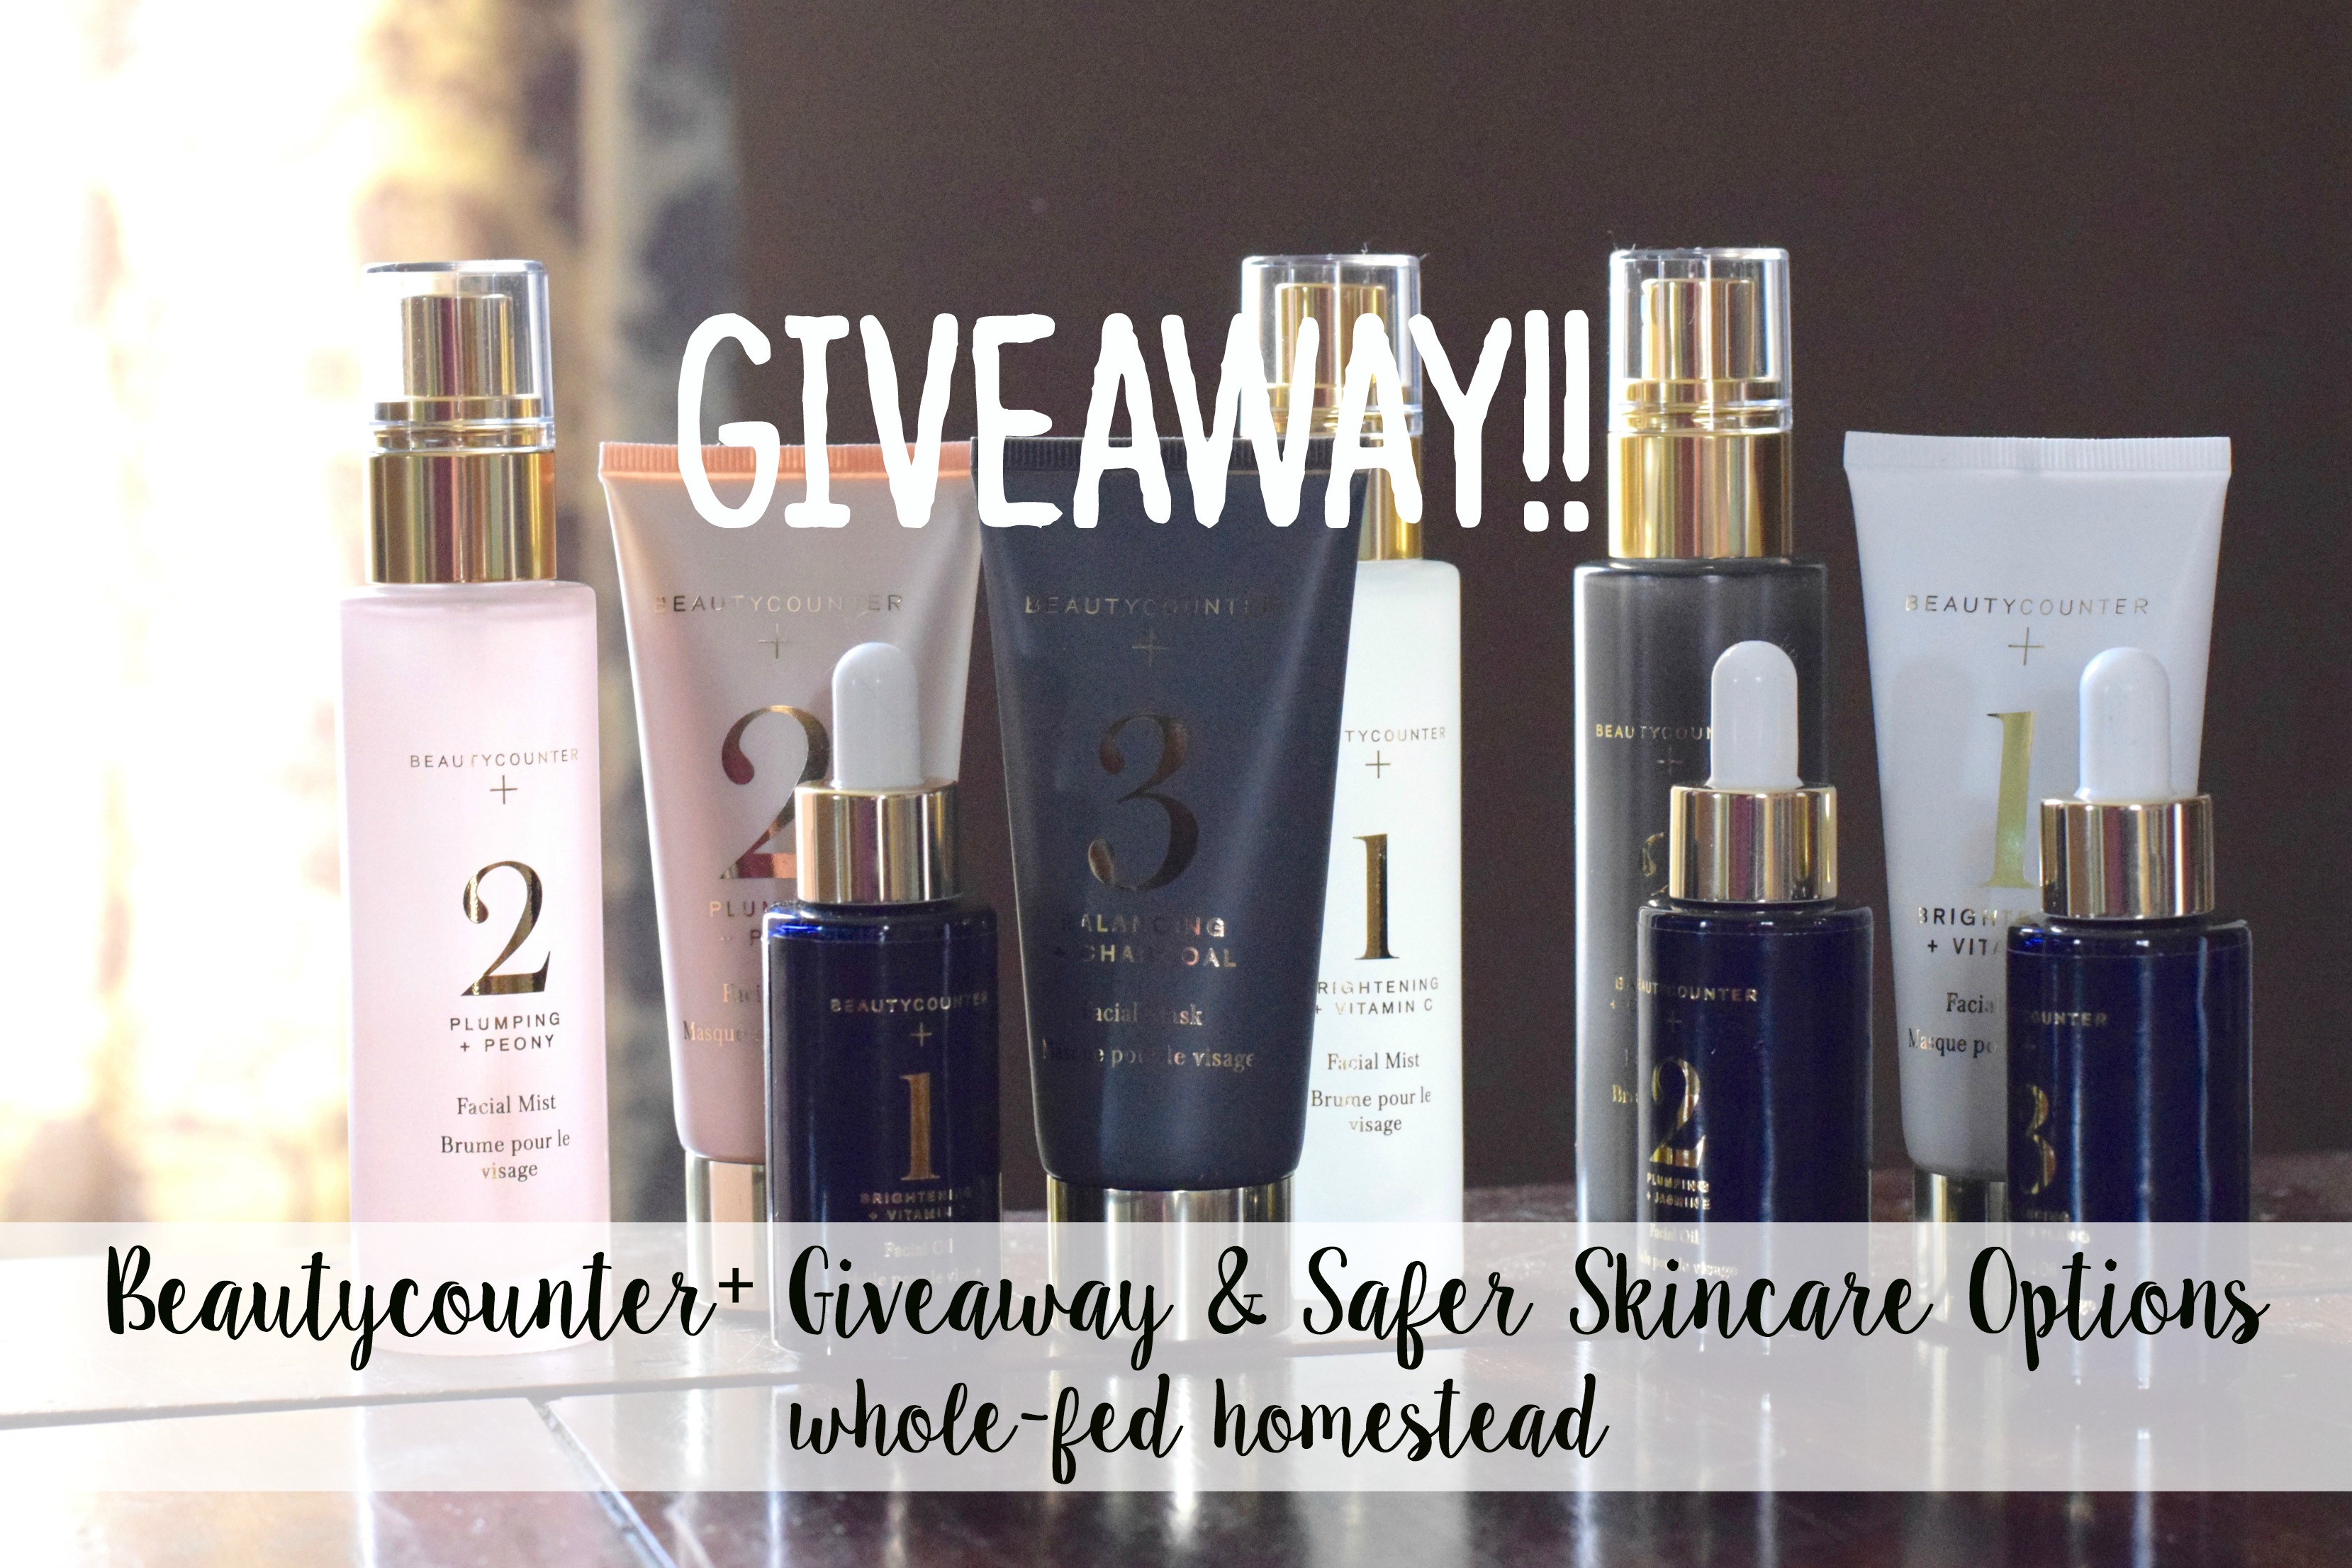 Beautycounter+ Giveaway | Whole-Fed Homestead